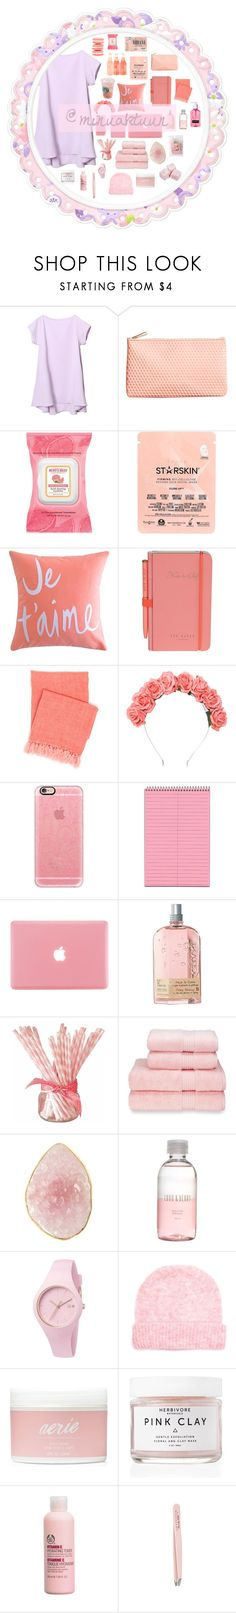 """""""🎀💕☂️🌸"""" by minuaktuun ❤ liked on Polyvore featuring H&M, John Galliano, Burt's Bees, Starskin, Brika, Wild & Wolf, Pine Cone Hill, Crown and Glory, Casetify and L'Occitane"""